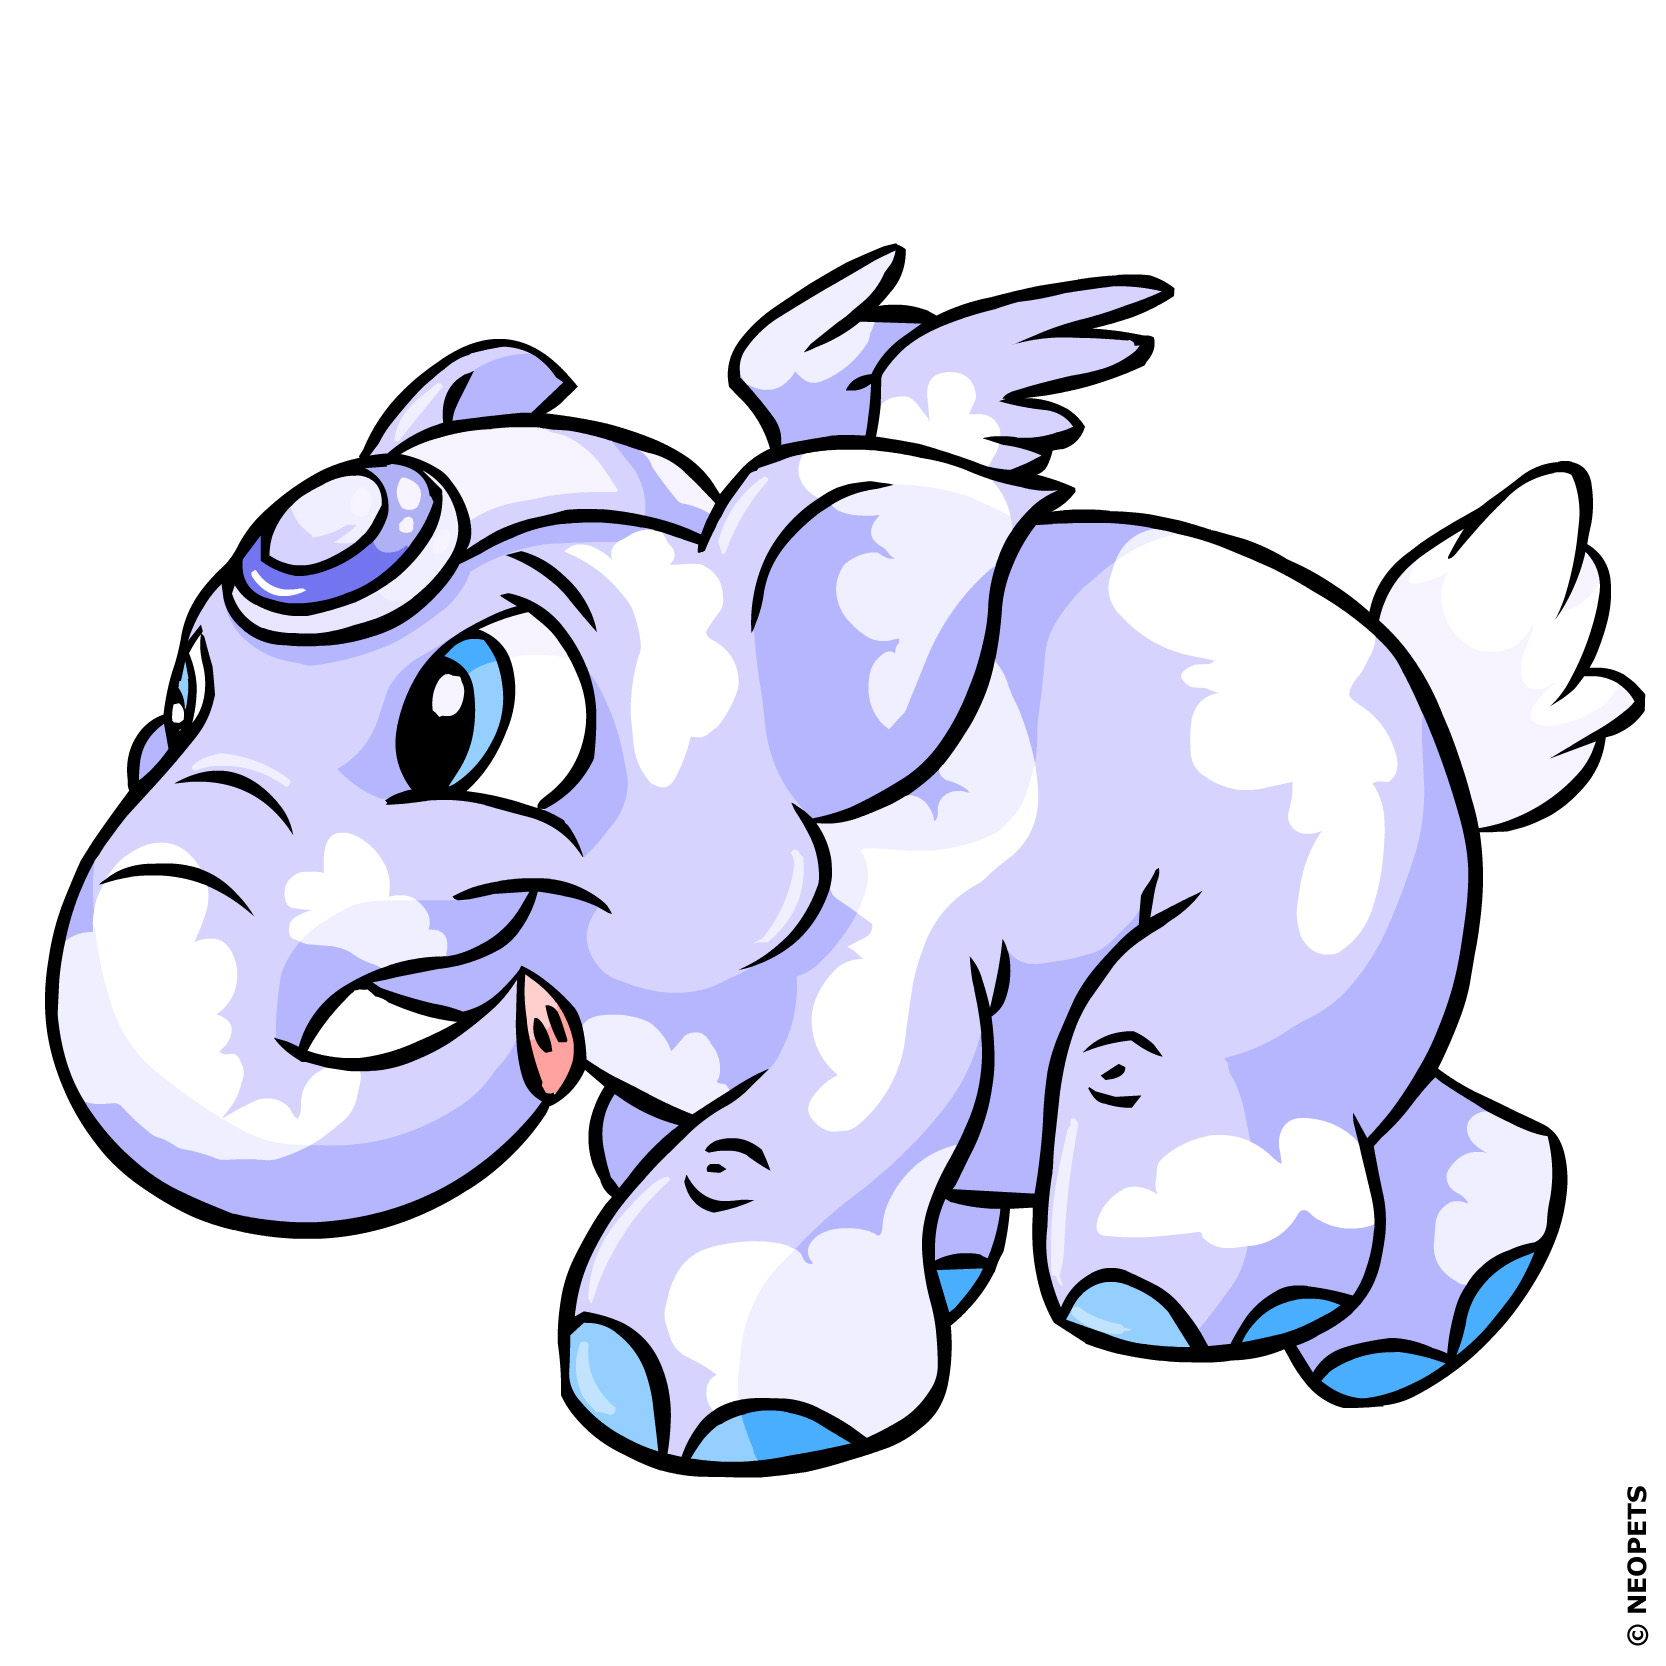 http://images.neopets.com/press/elephante_6.jpg